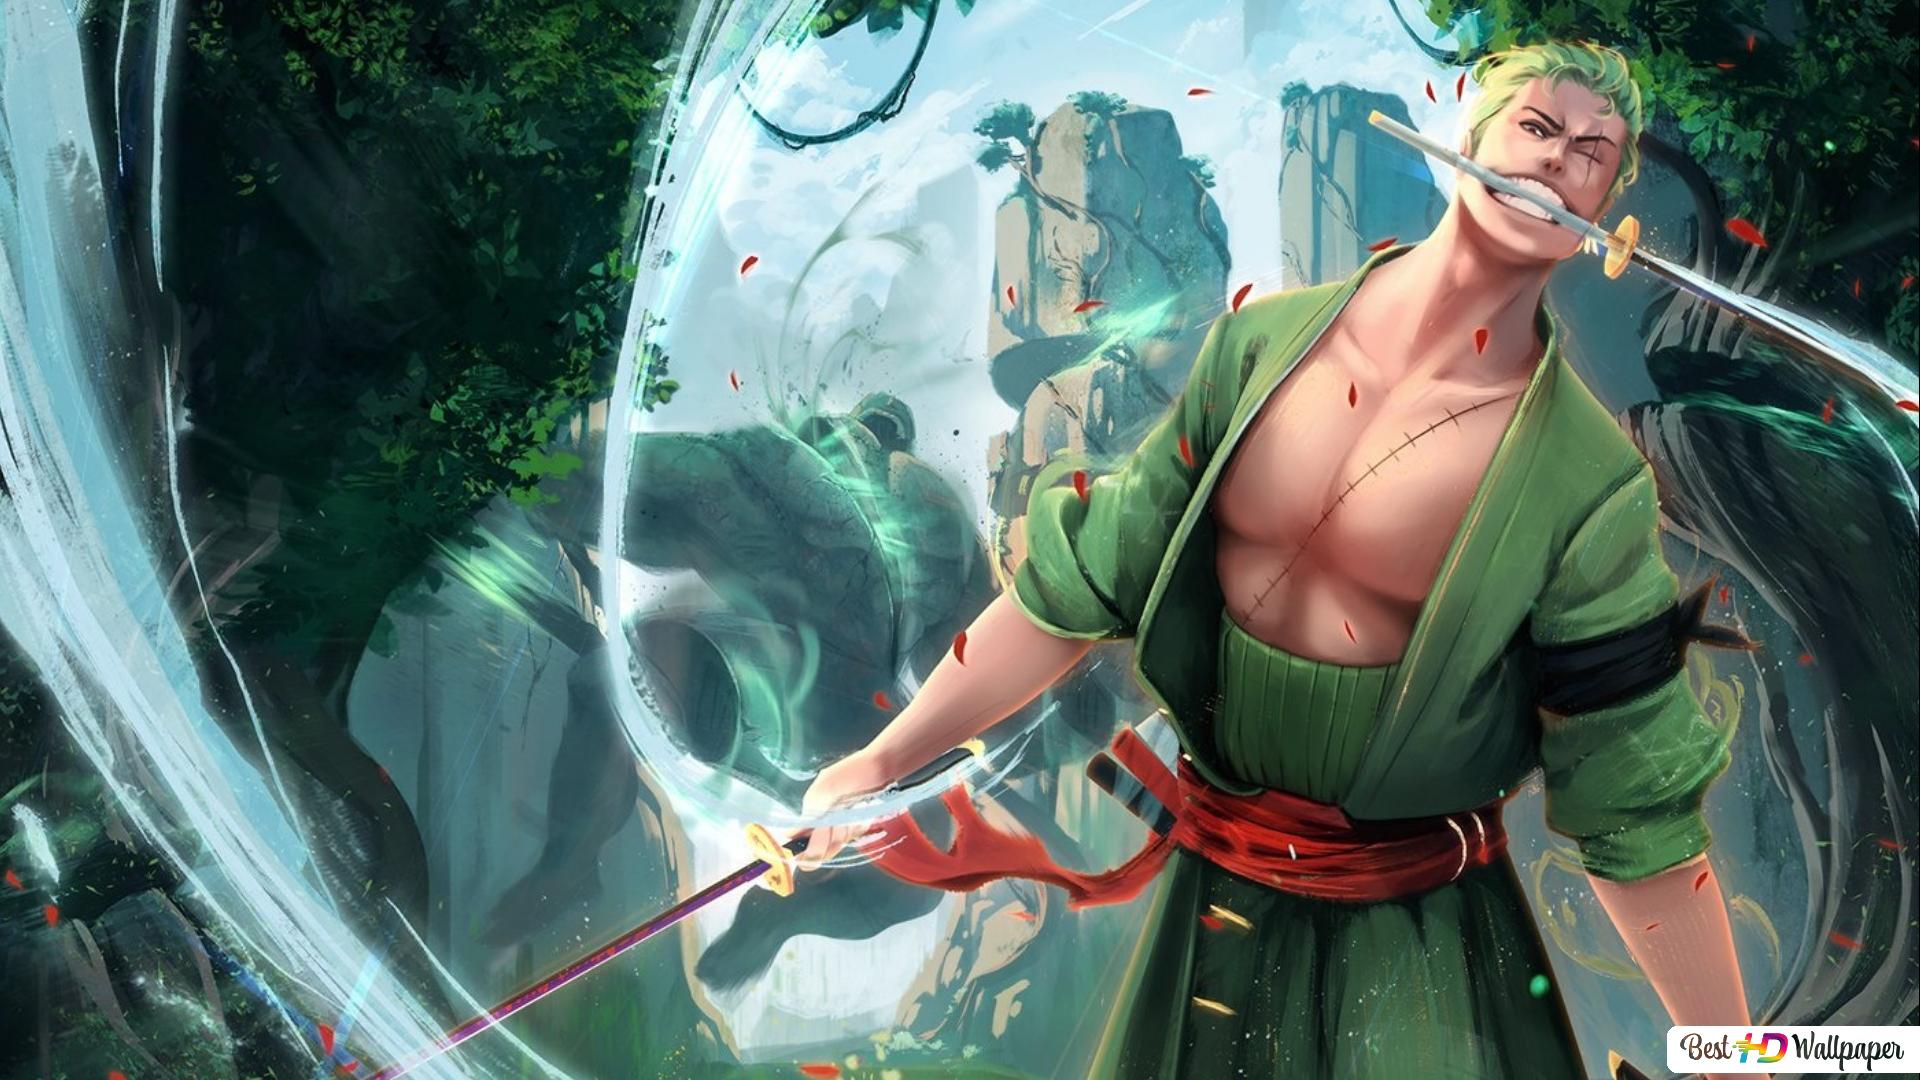 One Piece Zoro Hd Wallpaper 1920x1080 Gambarku